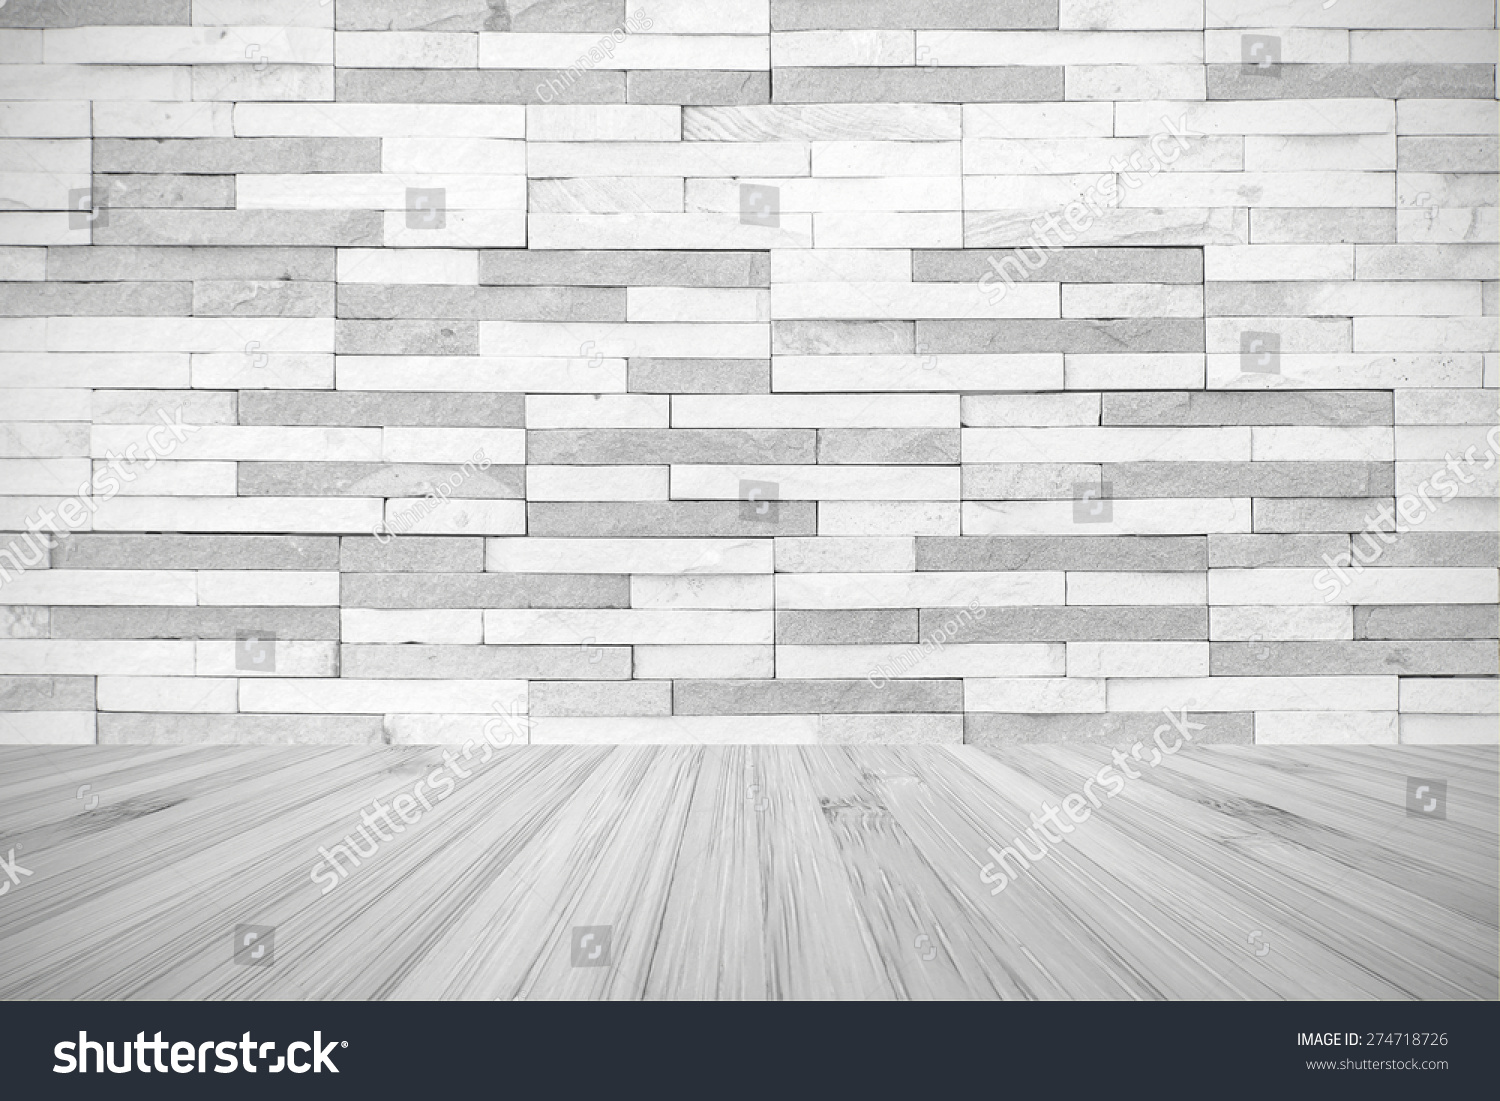 White Grey Colour Brick Tile Textured Wall With Wood Floor